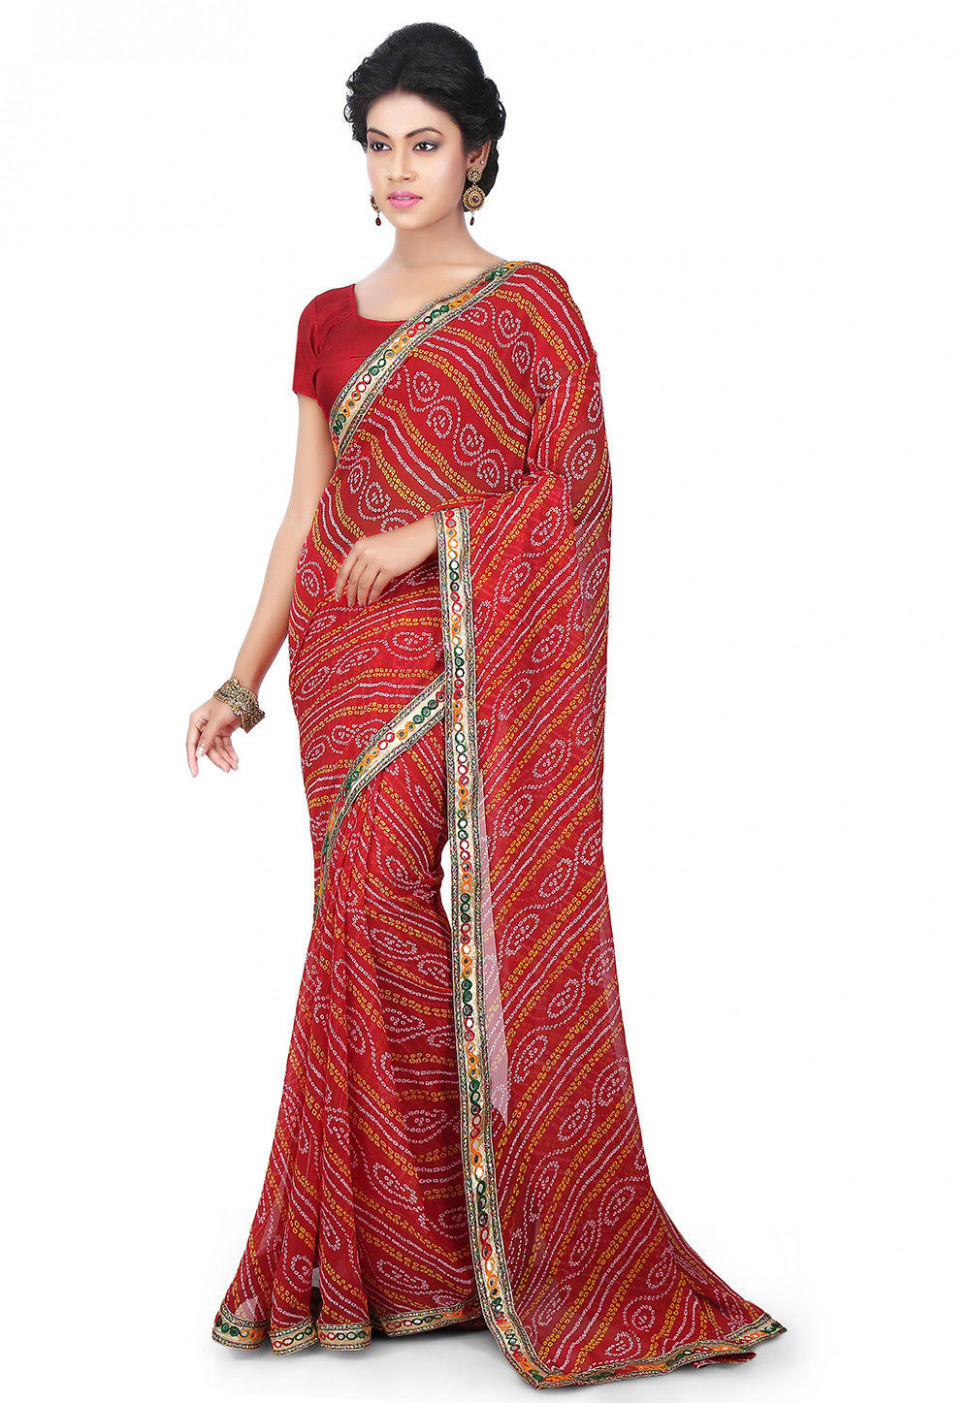 Bandhej Printed Georgette Saree in Red : SJN6925